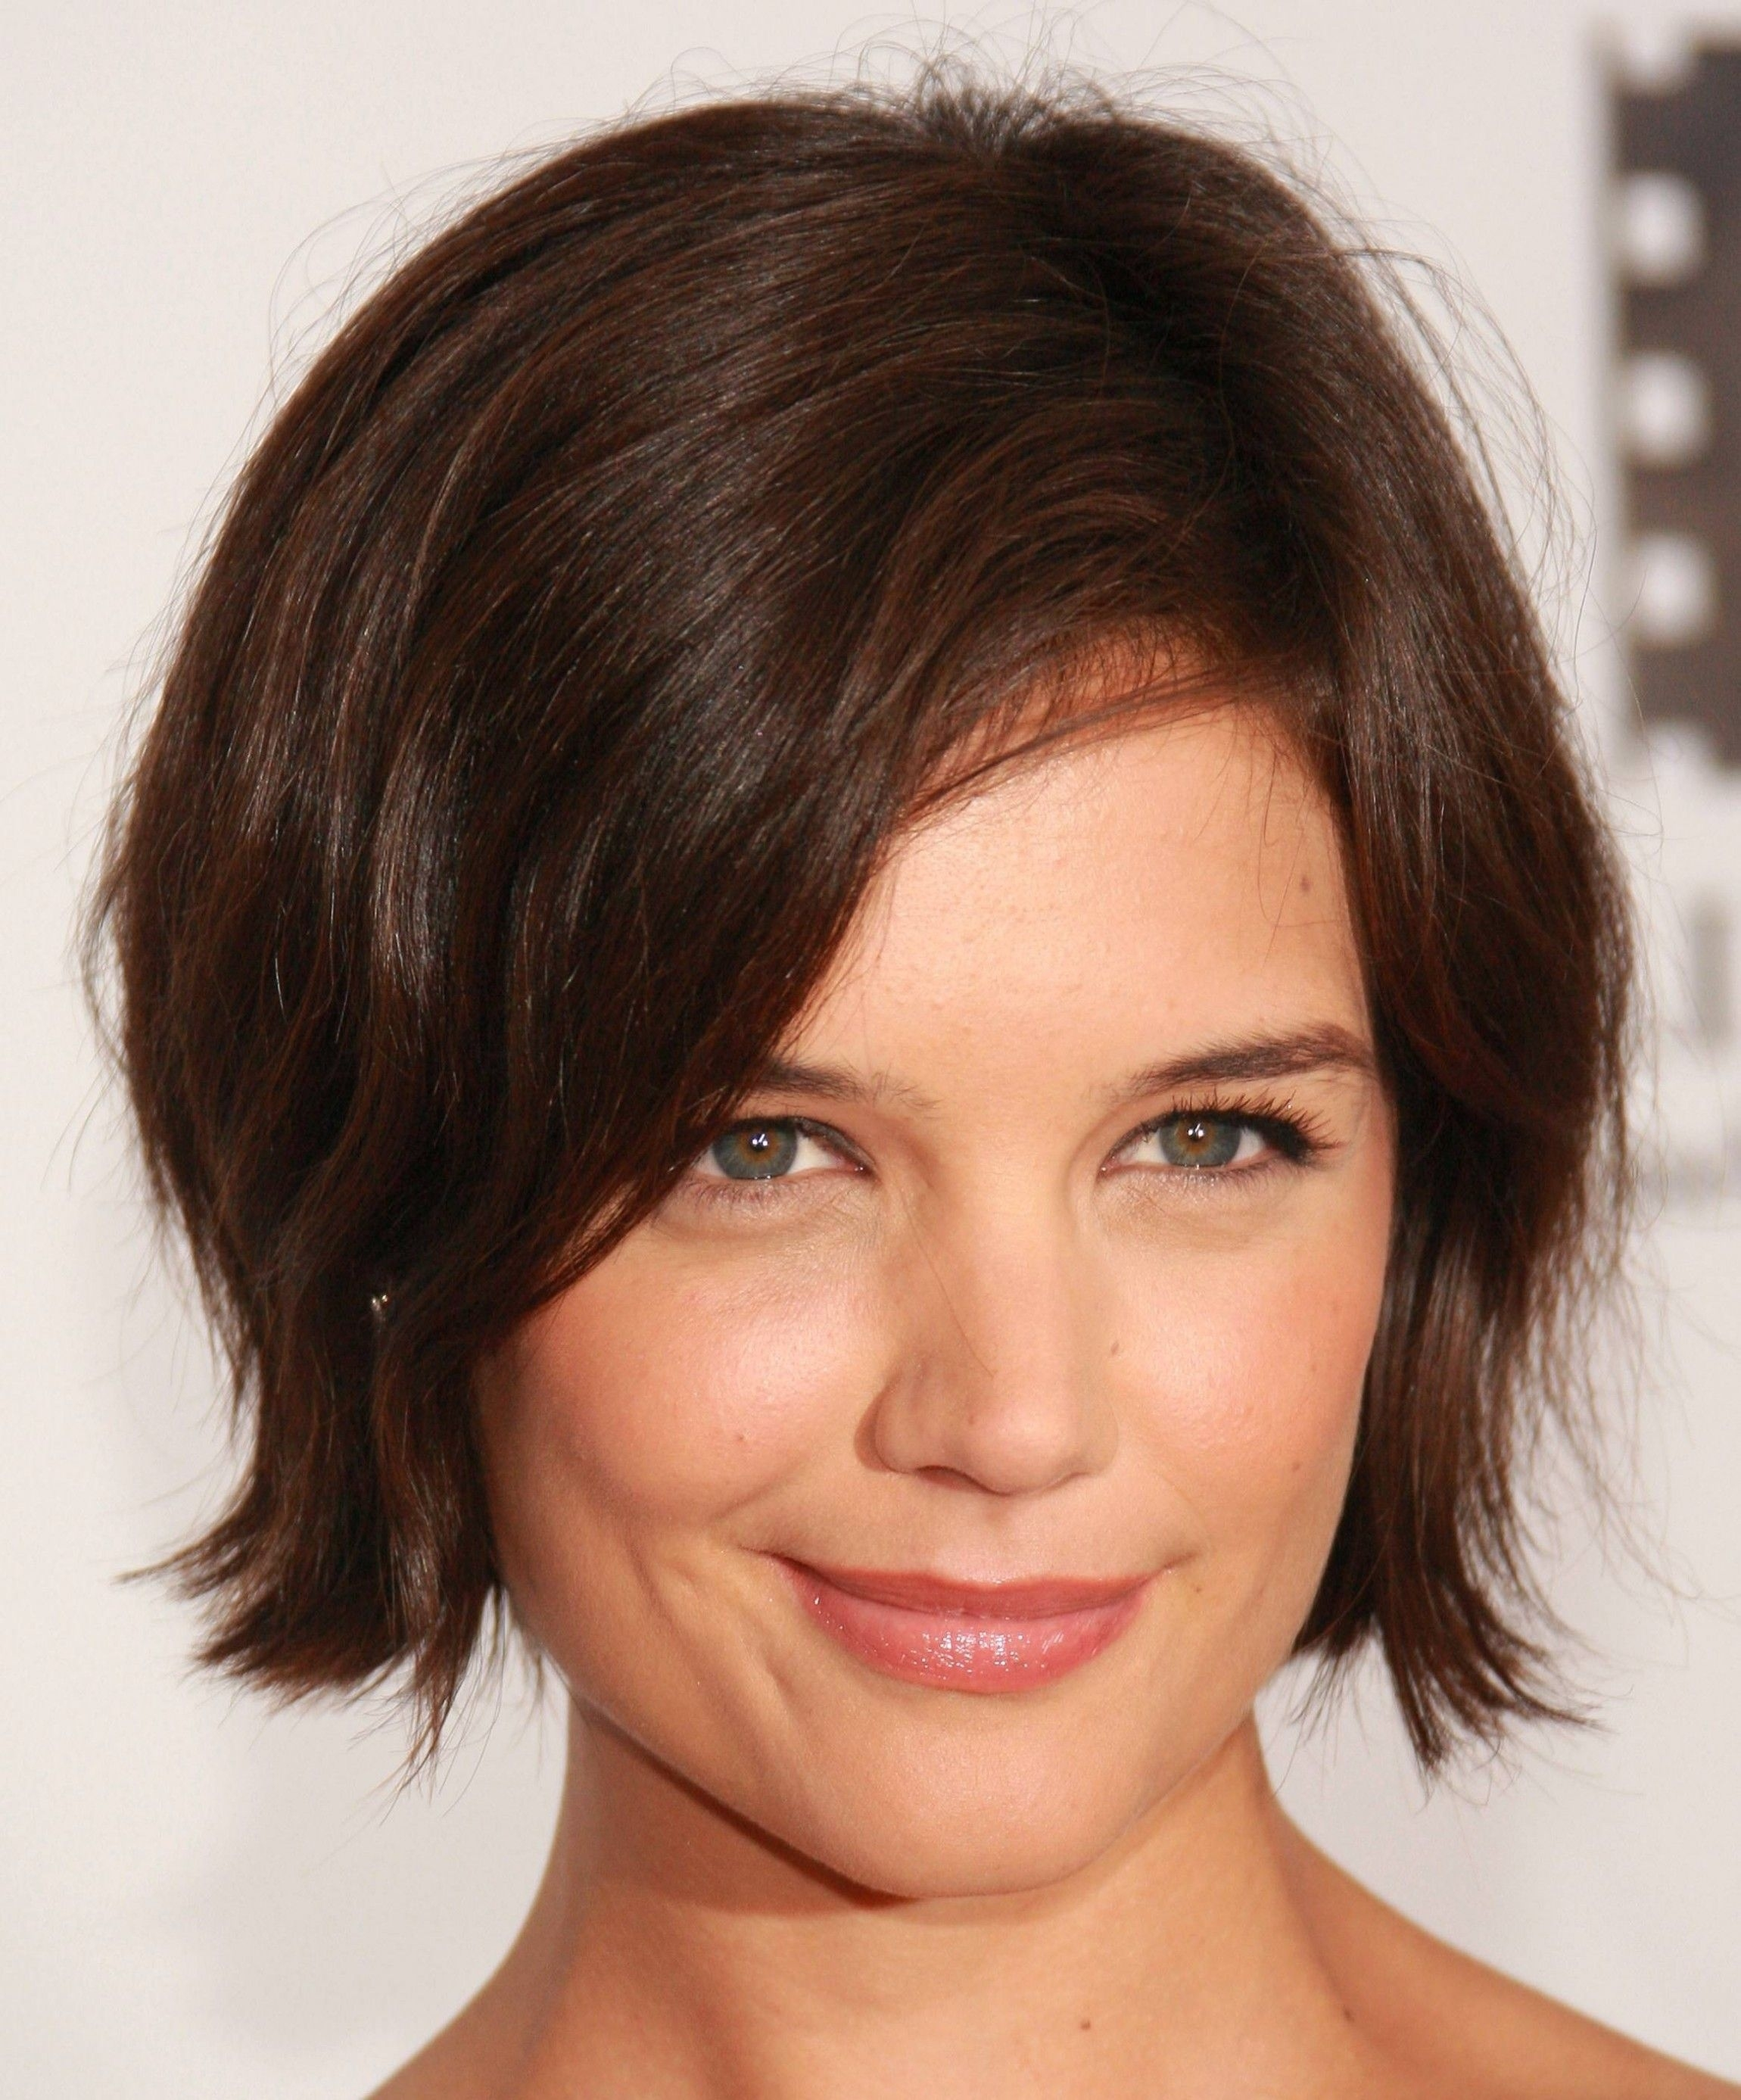 Short+Hairstyles+For+Fat+Faces |  Comments ≈ Tags : Short within Haircut For Thick Hair Small Face